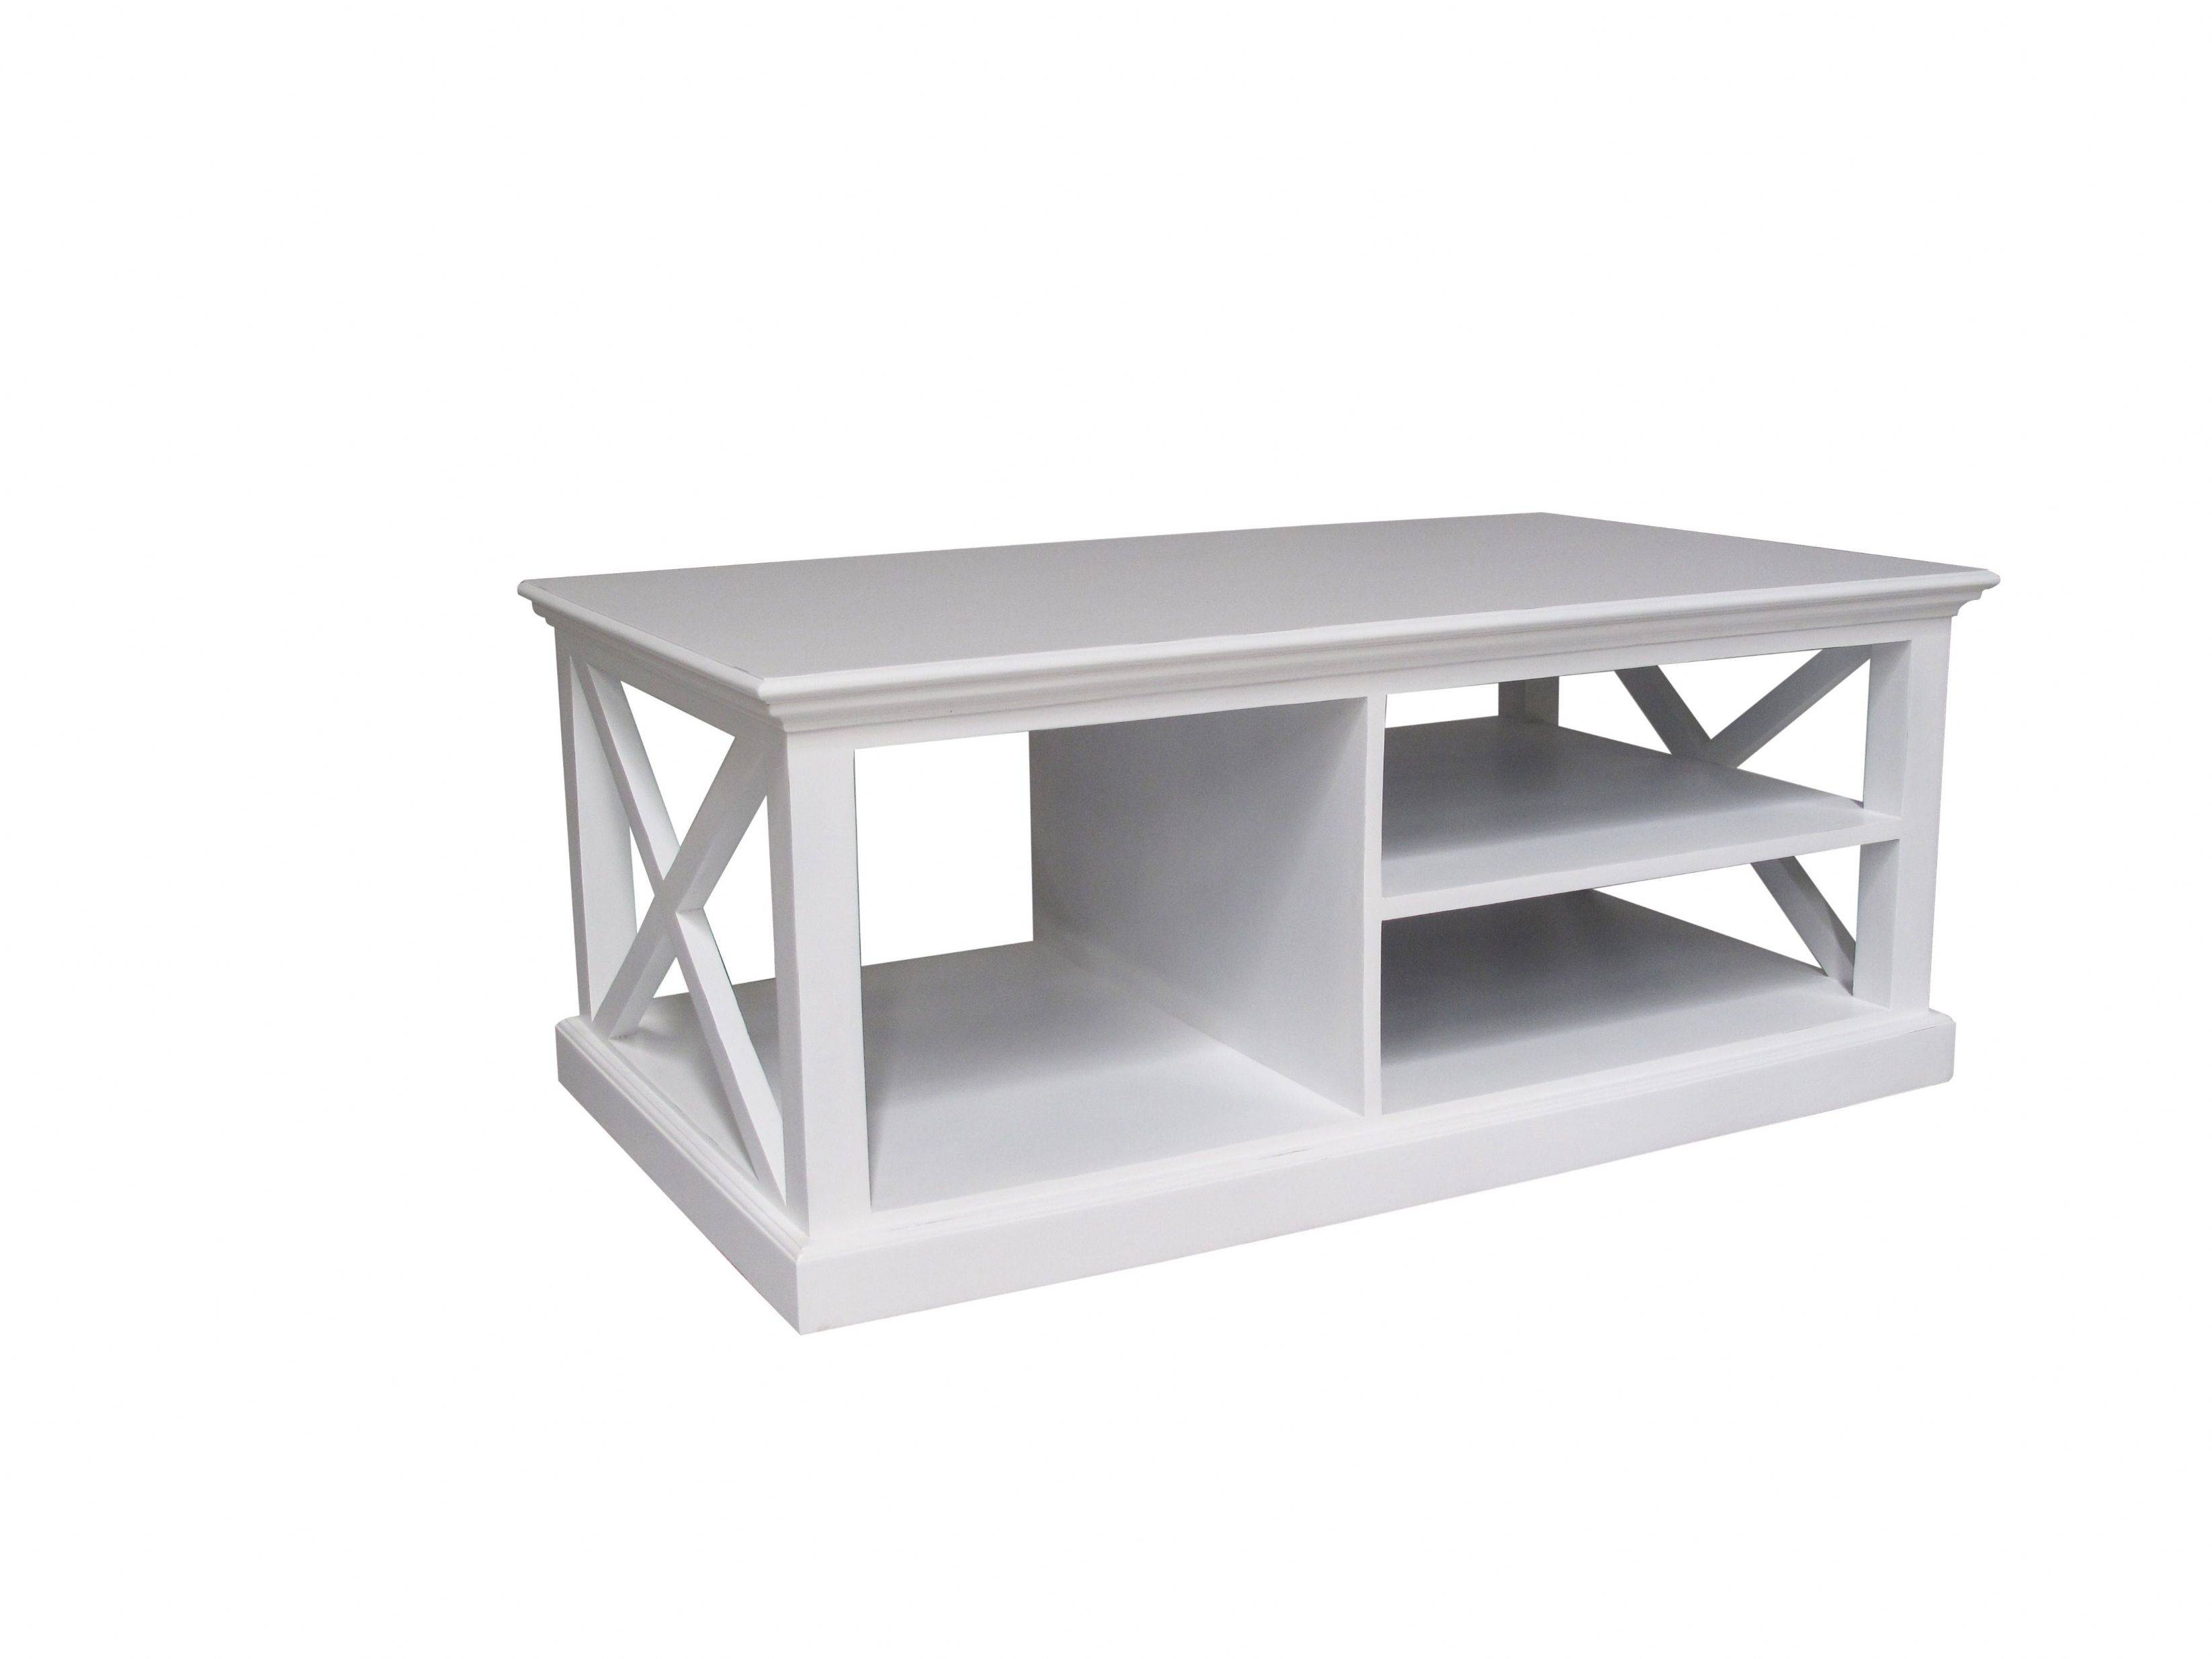 Coffee Table. Simple White Wood Coffee Table Designs: Wonderful inside White Wood And Glass Coffee Tables (Image 6 of 30)